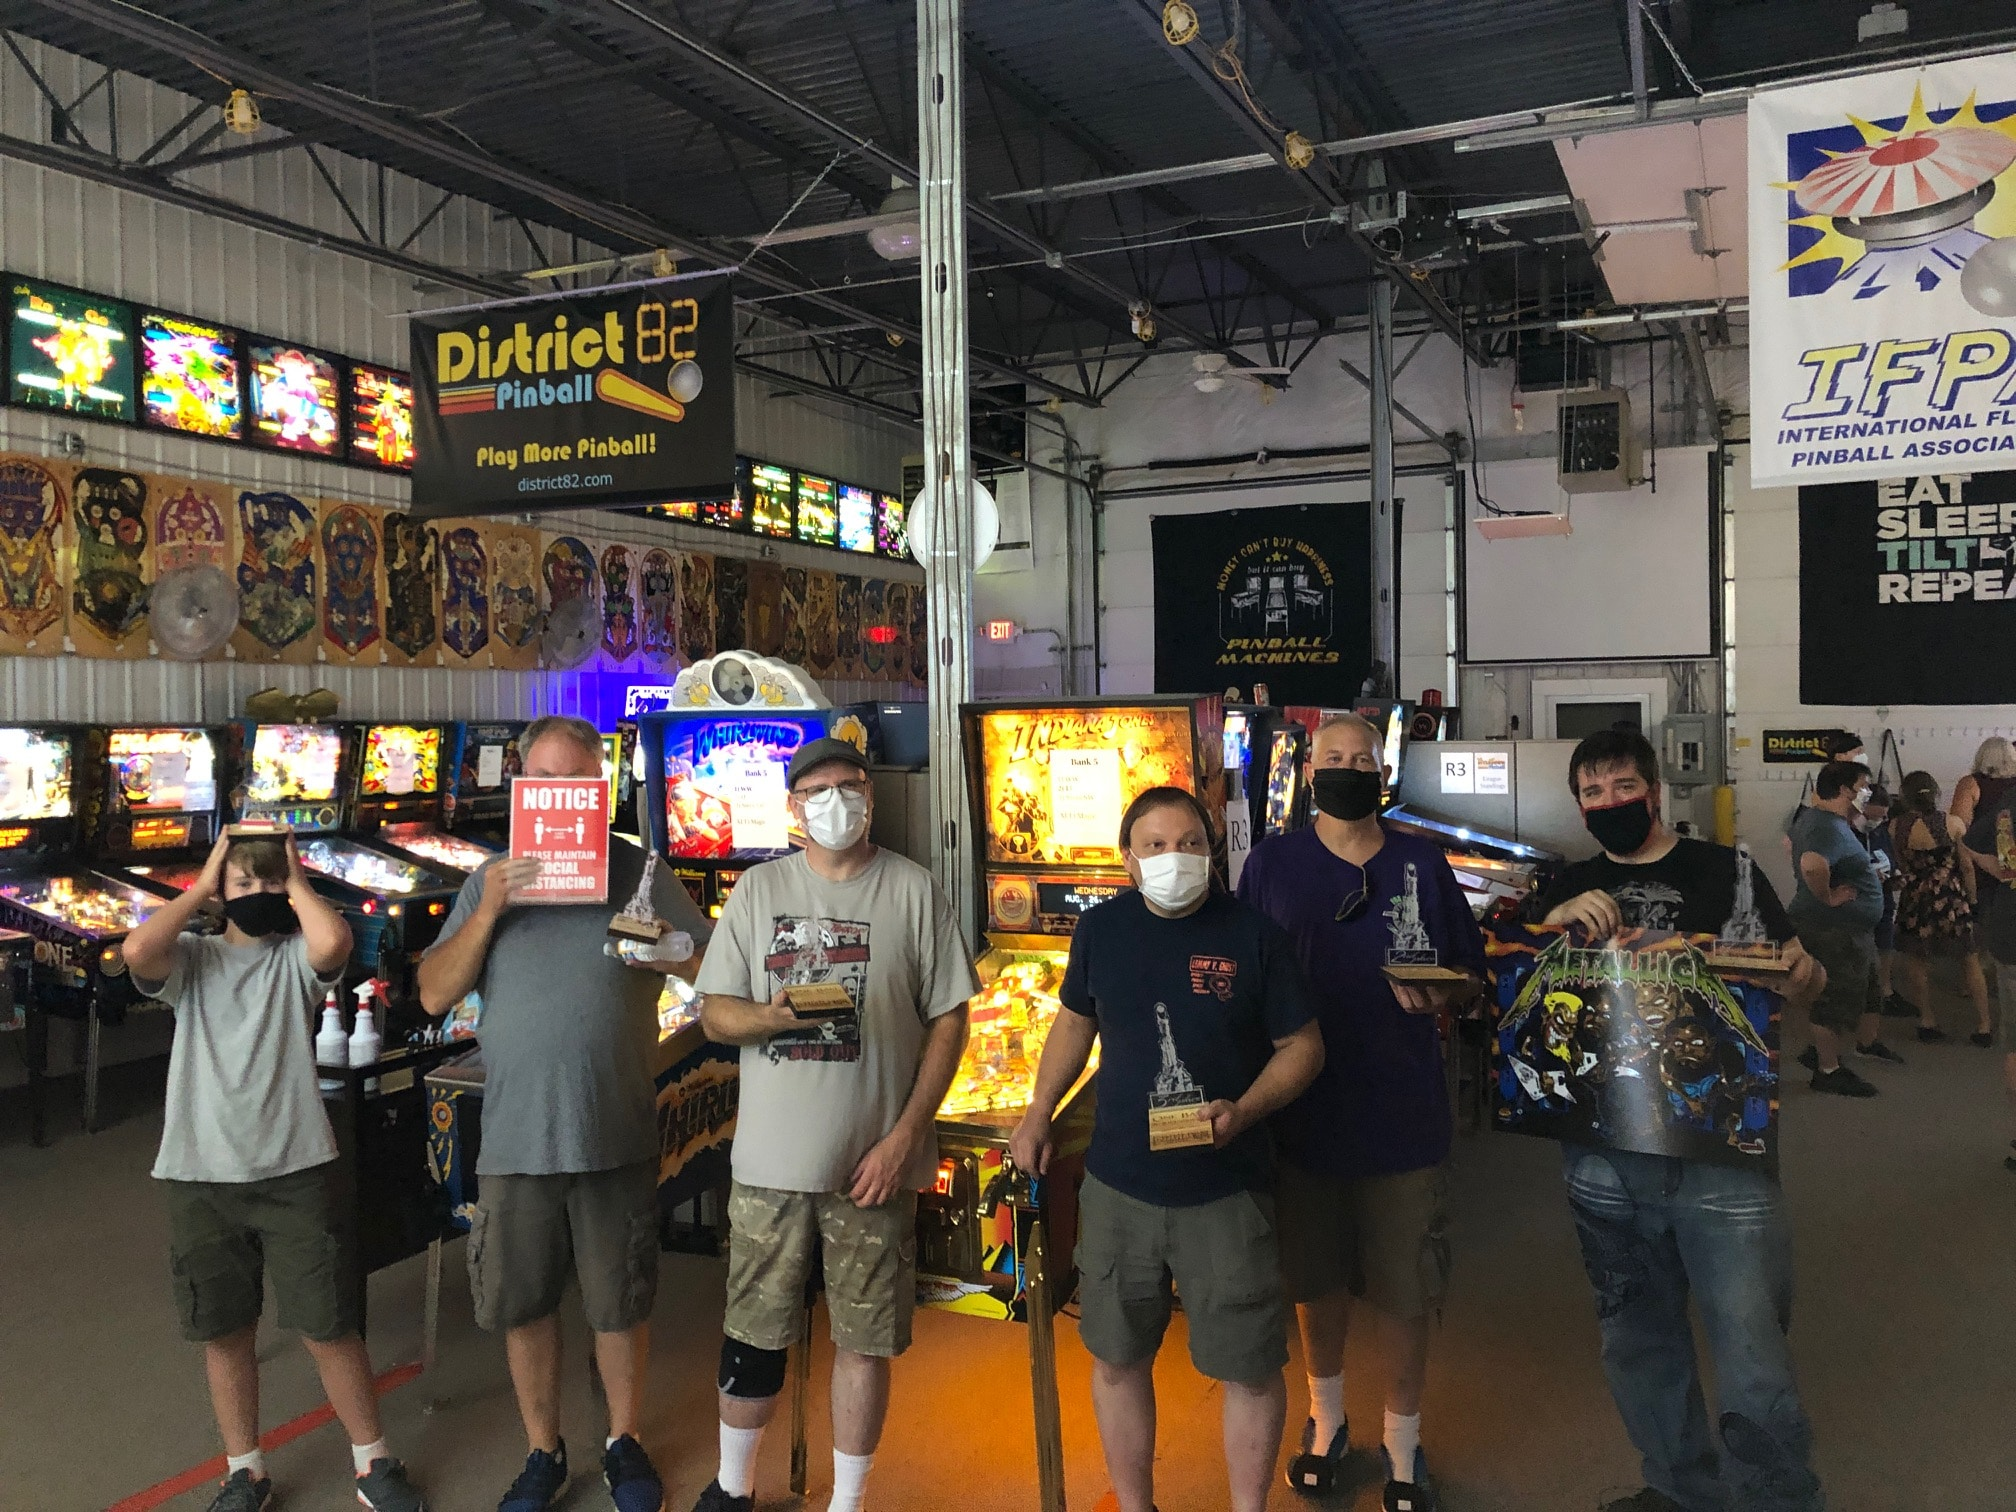 One Ball Pinball Tournament Top 5 Players Green Bay, WI